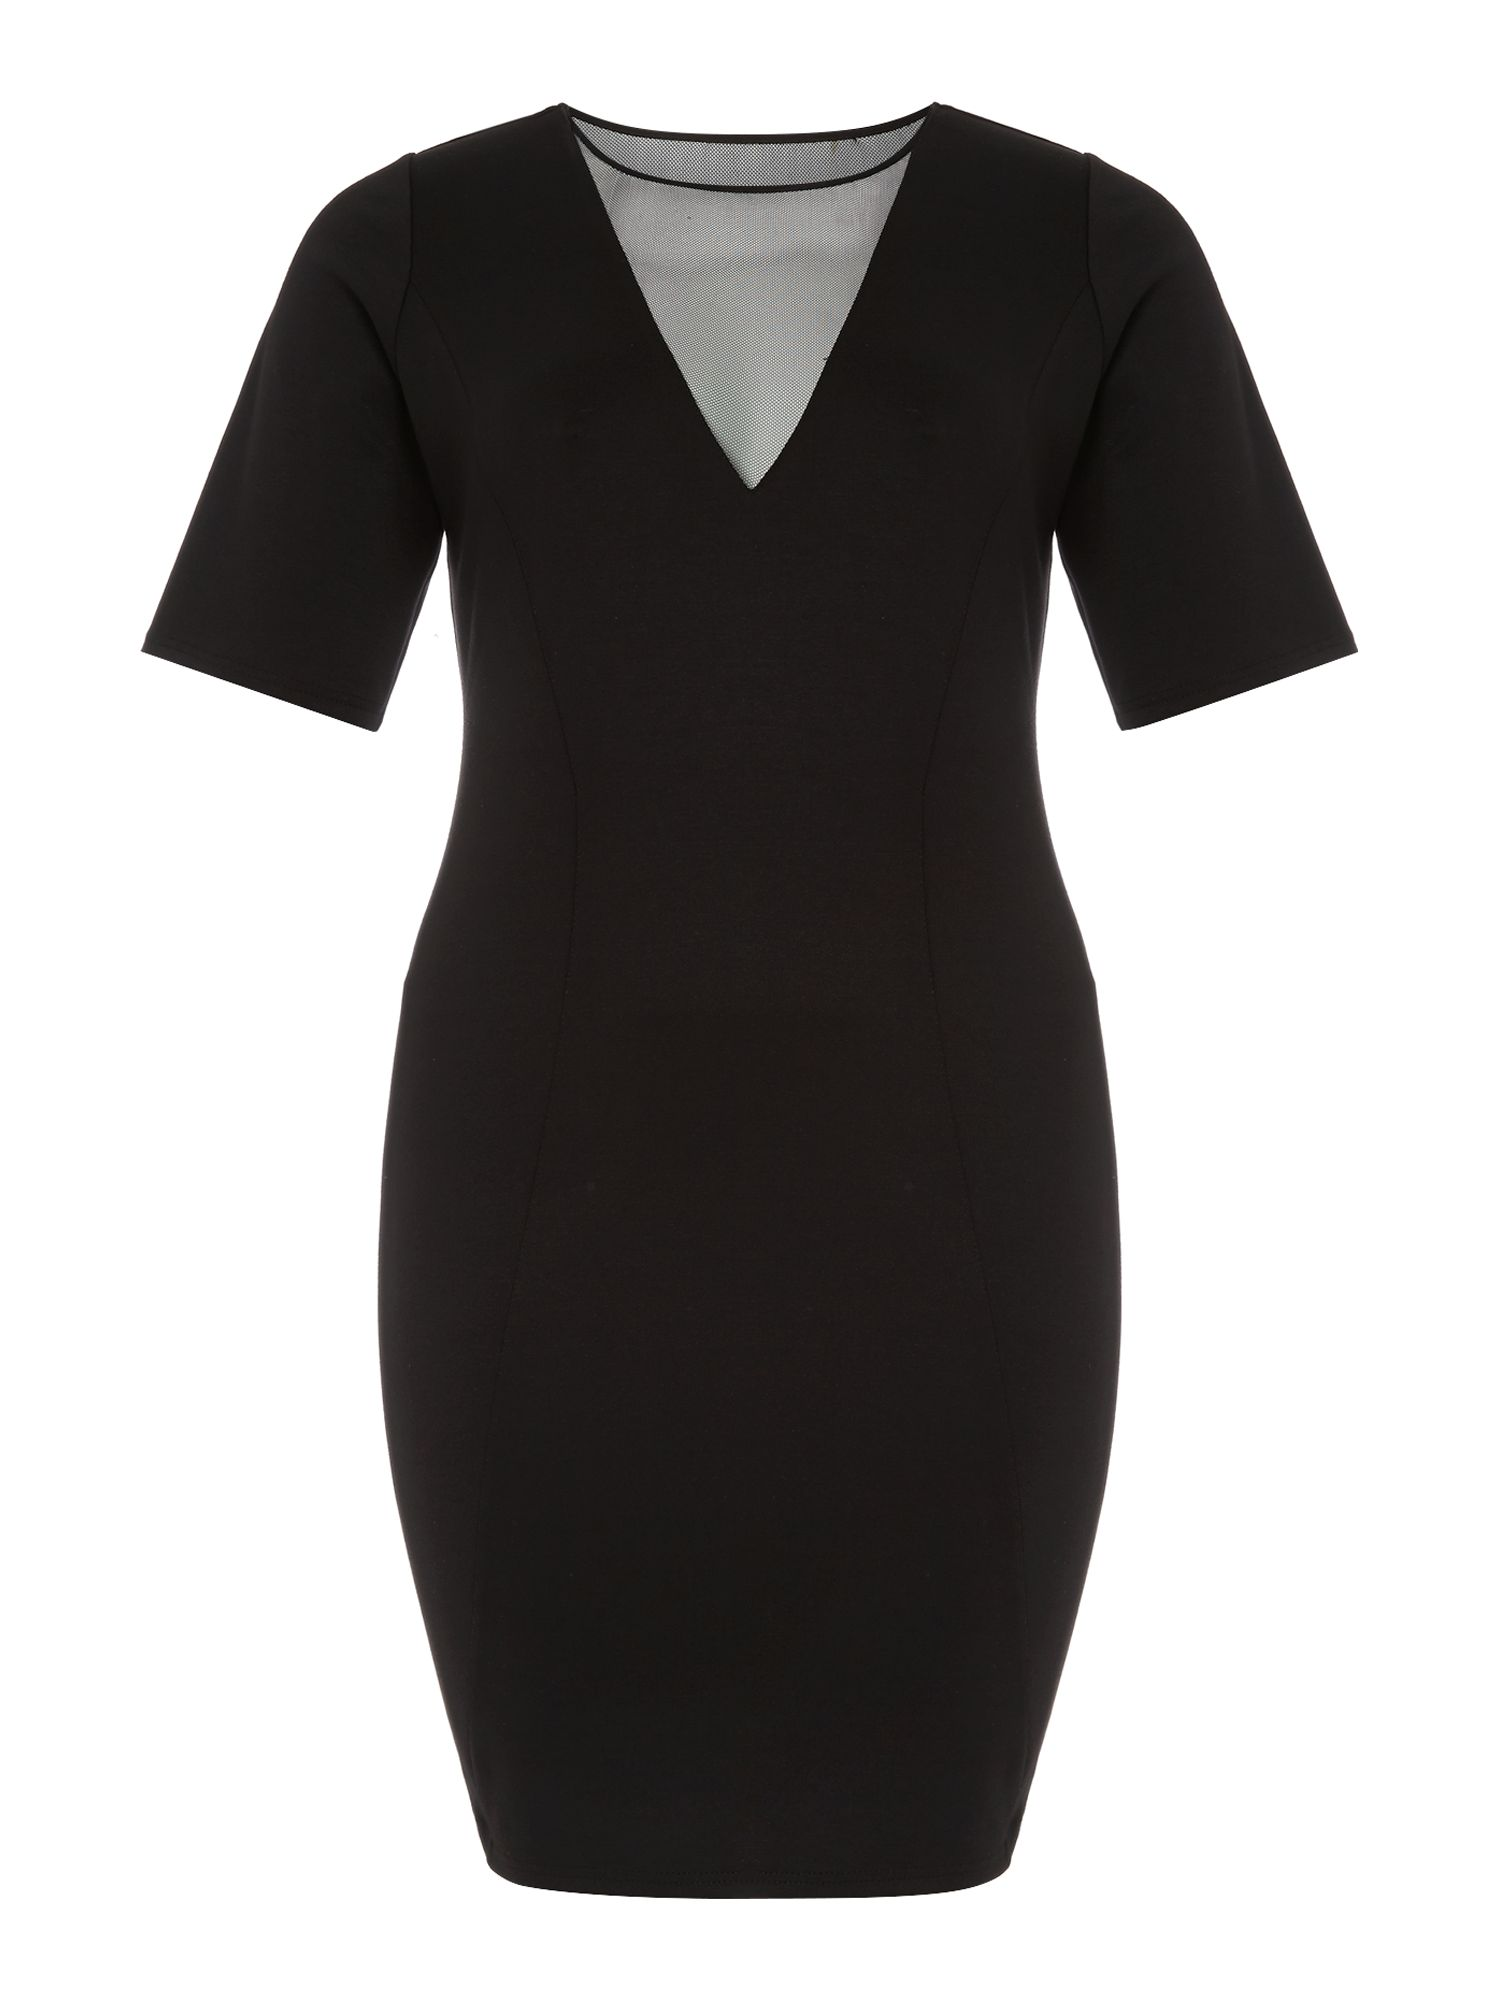 3/4 sleeve mesh front bodycon dress